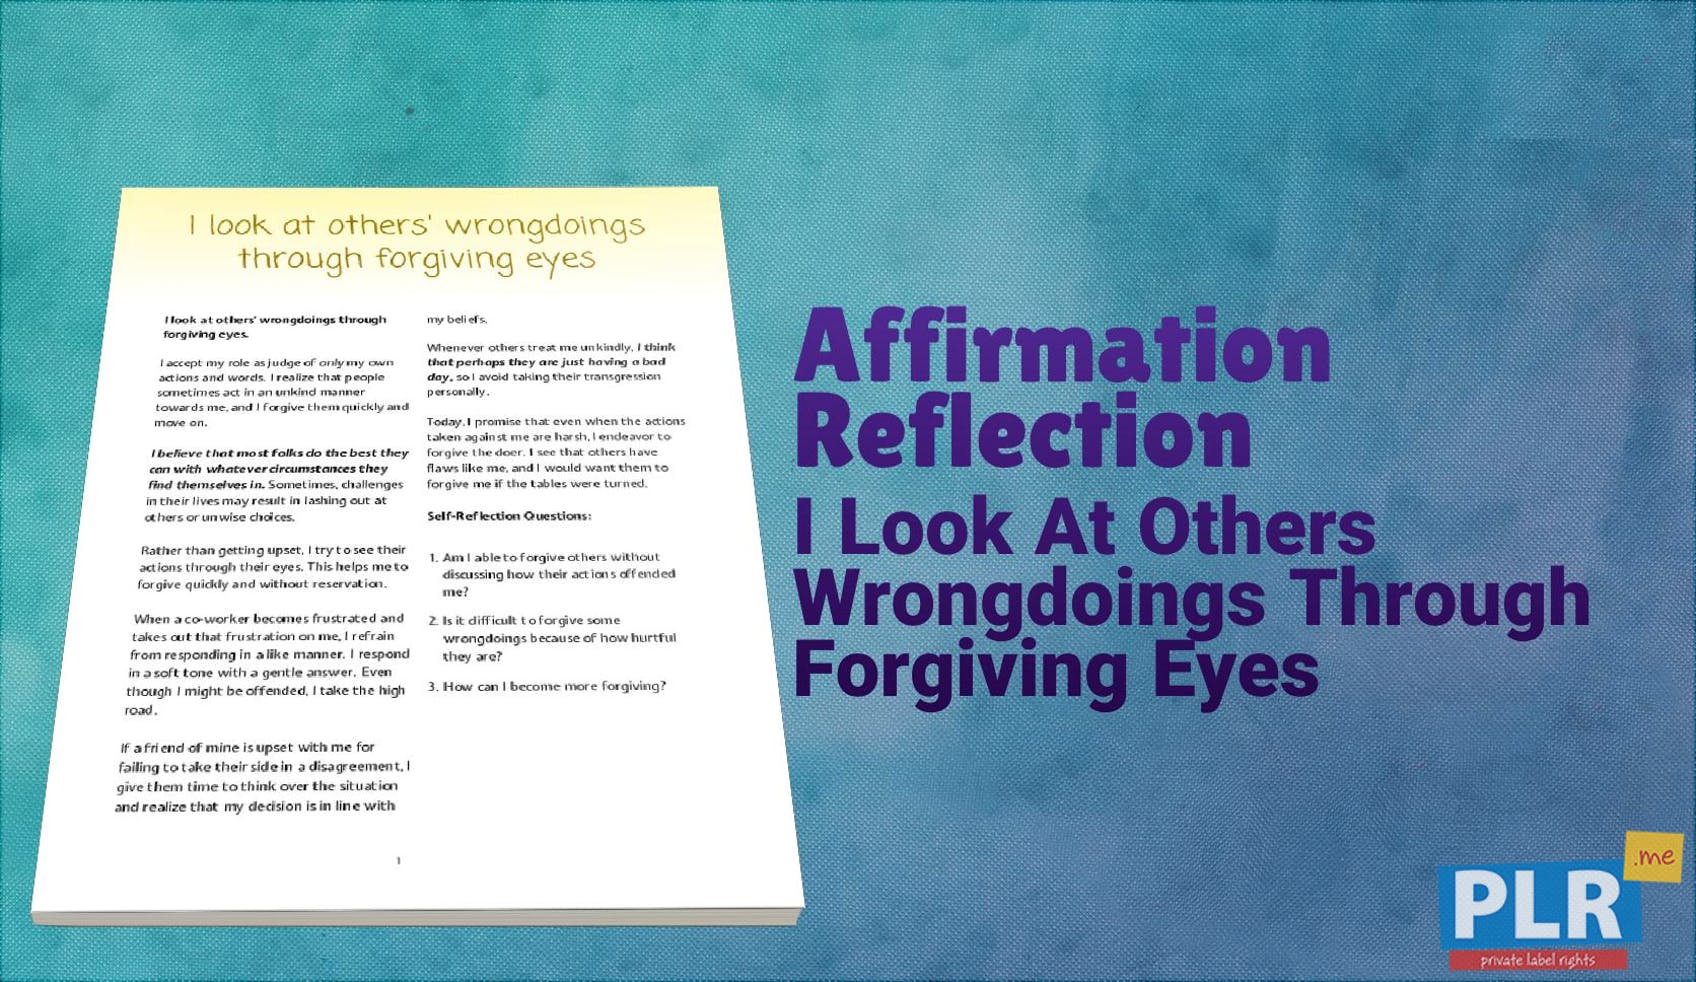 I Look At Others Wrongdoings Through Forgiving Eyes